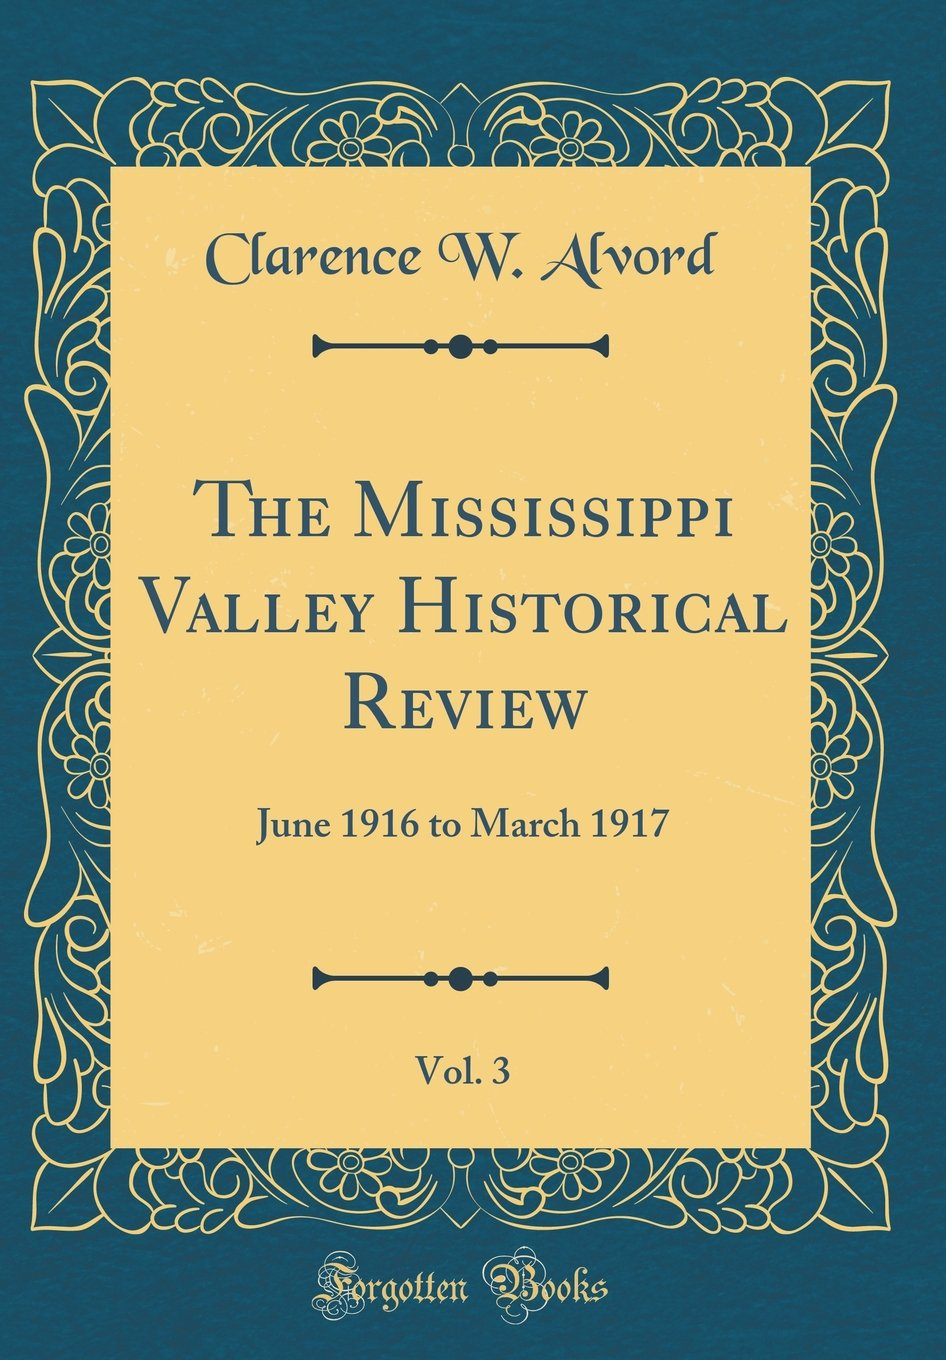 The Mississippi Valley Historical Review, Vol. 3: June 1916 to March 1917 (Classic Reprint) pdf